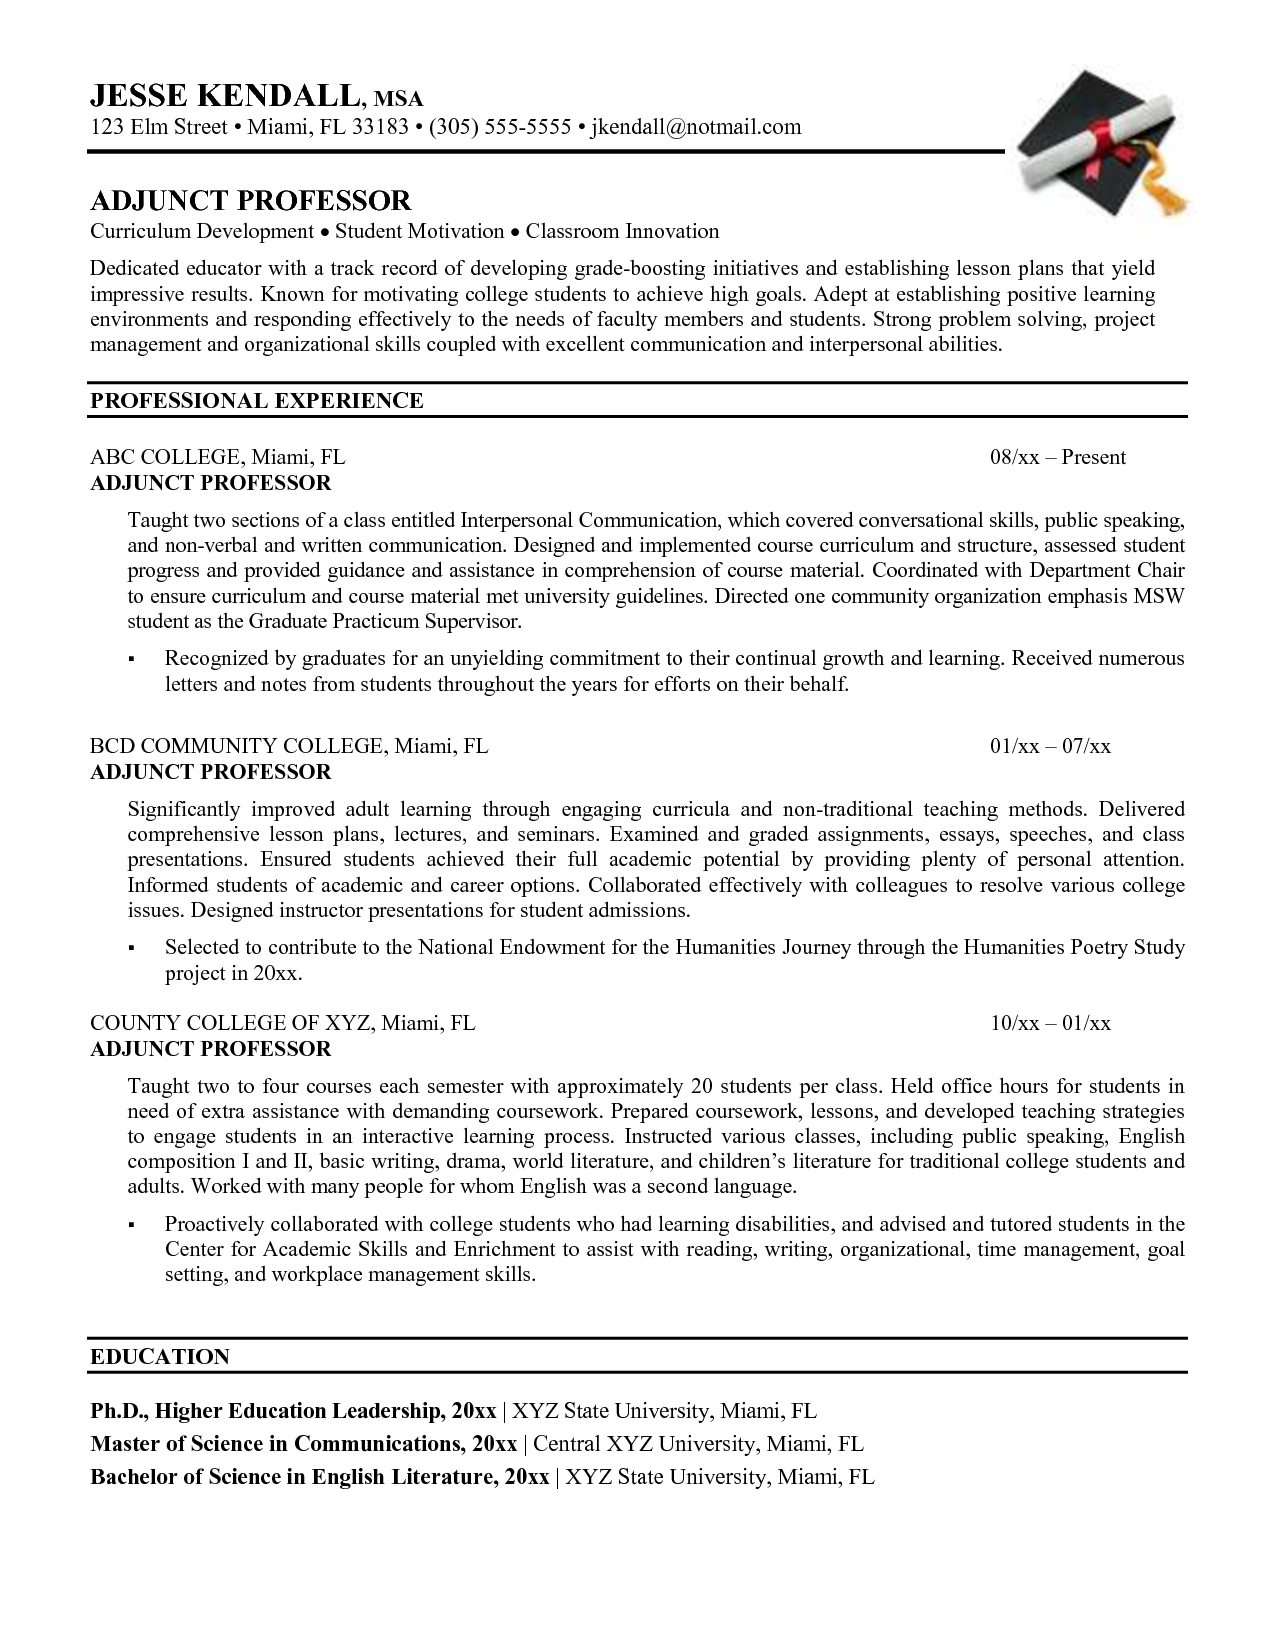 sle resume for faculty position engineering adjunct